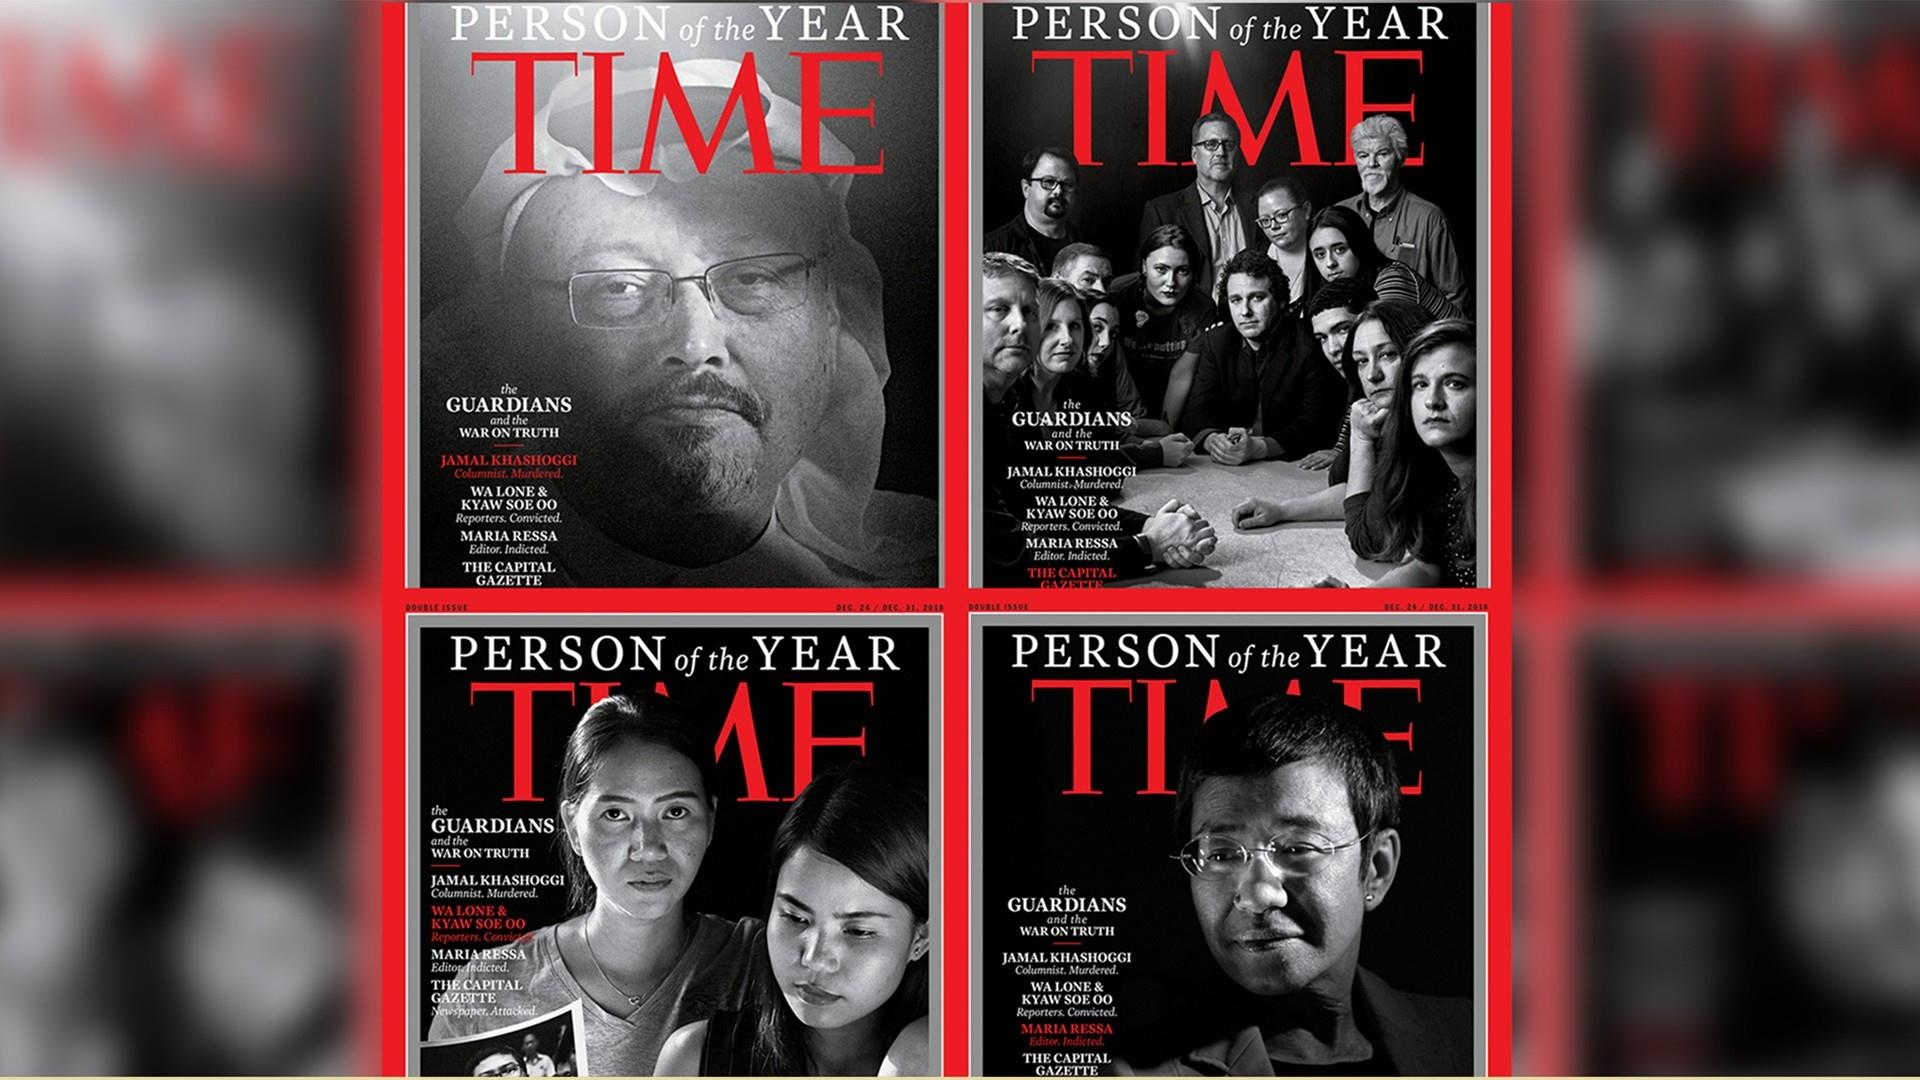 Time's 2018 'Person of the Year': Killed and imprisoned journalists